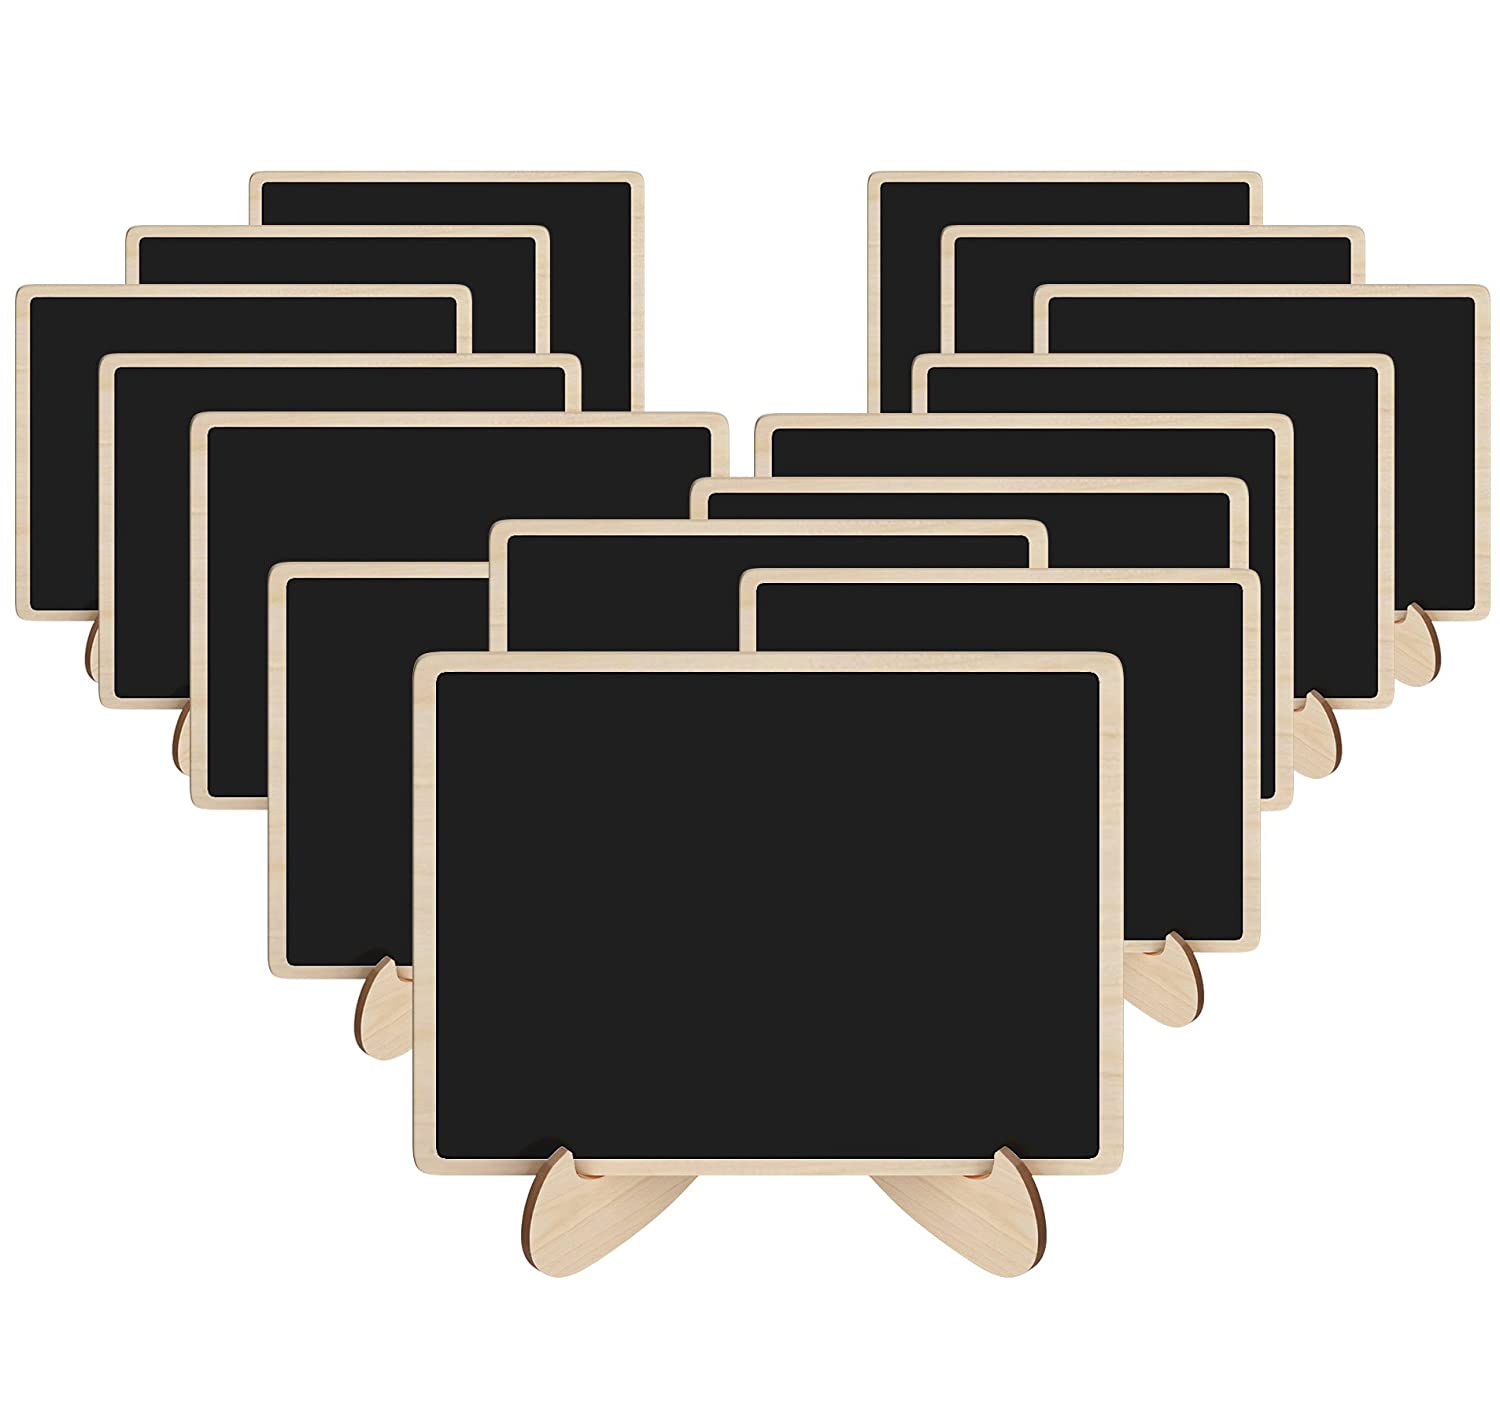 Korlon 15 Pack Mini Chalkboards Signs with Easel Stand, Wood Rectangle Small Chalkboard Signs Place Cards for Weddings, Parties, Table Numbers, Food Signs and Special Event Decoration CLN-024-1